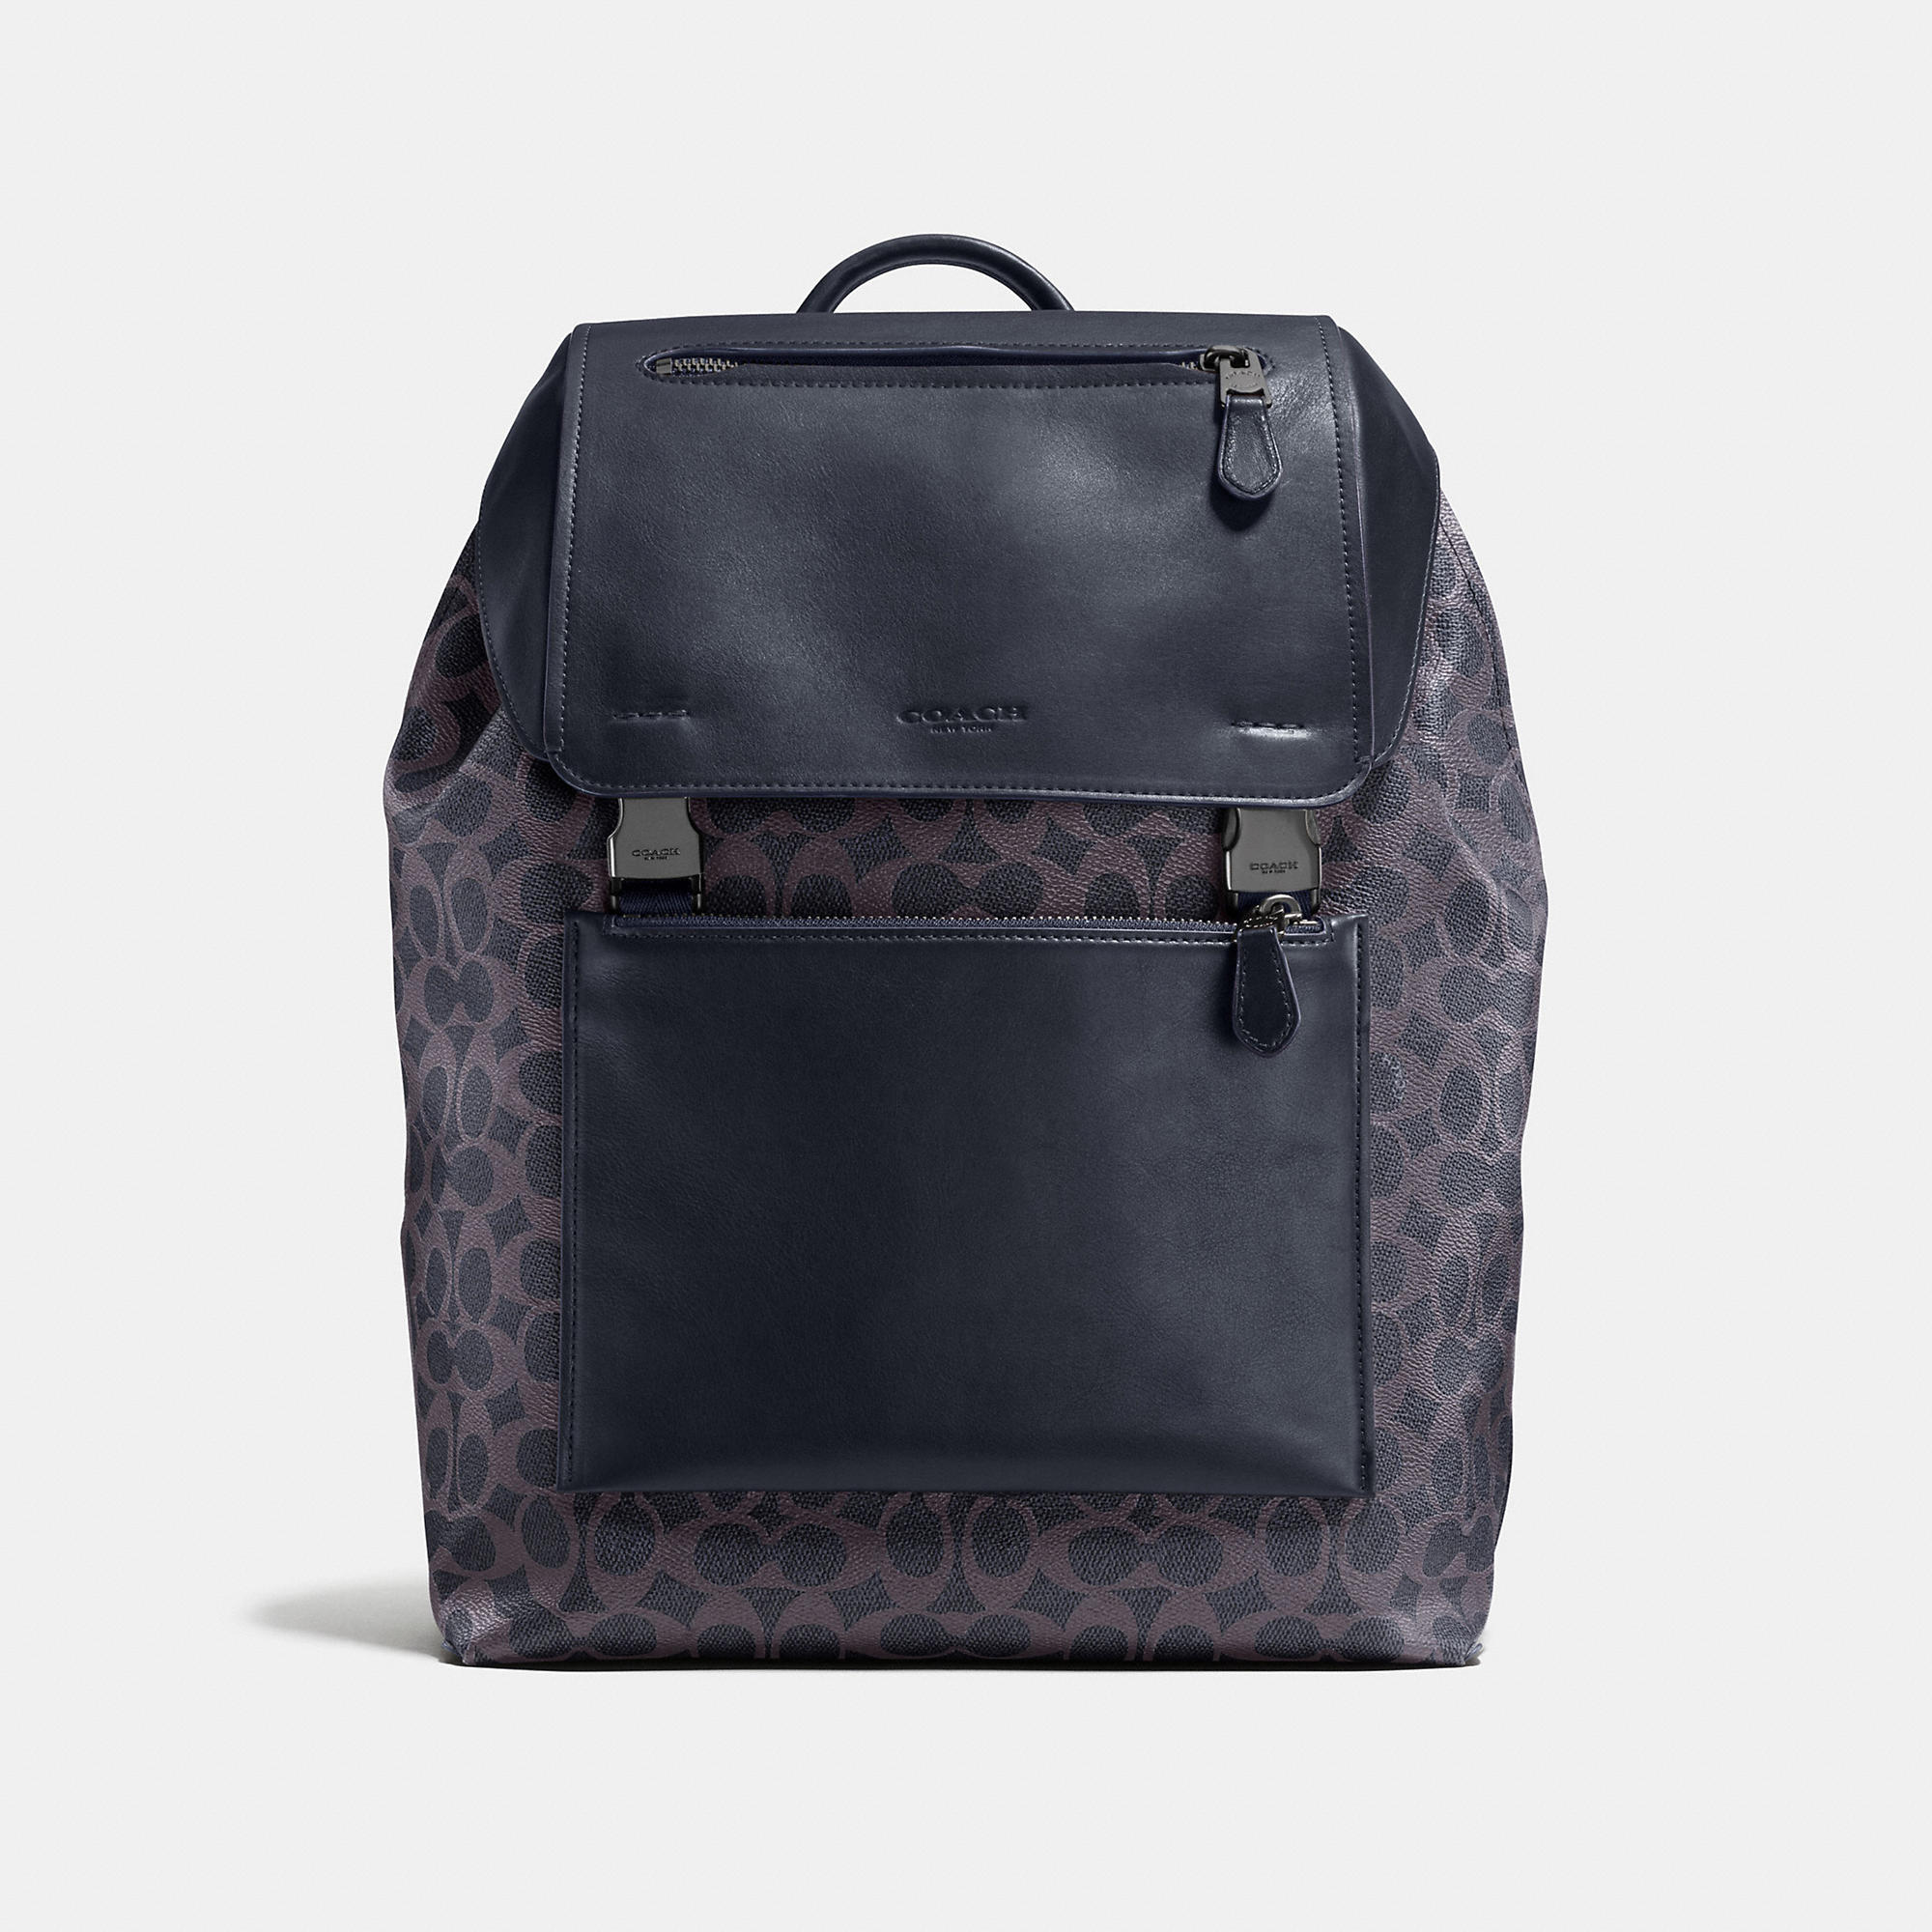 Coach Manhattan Backpack In Signature Coated Canvas